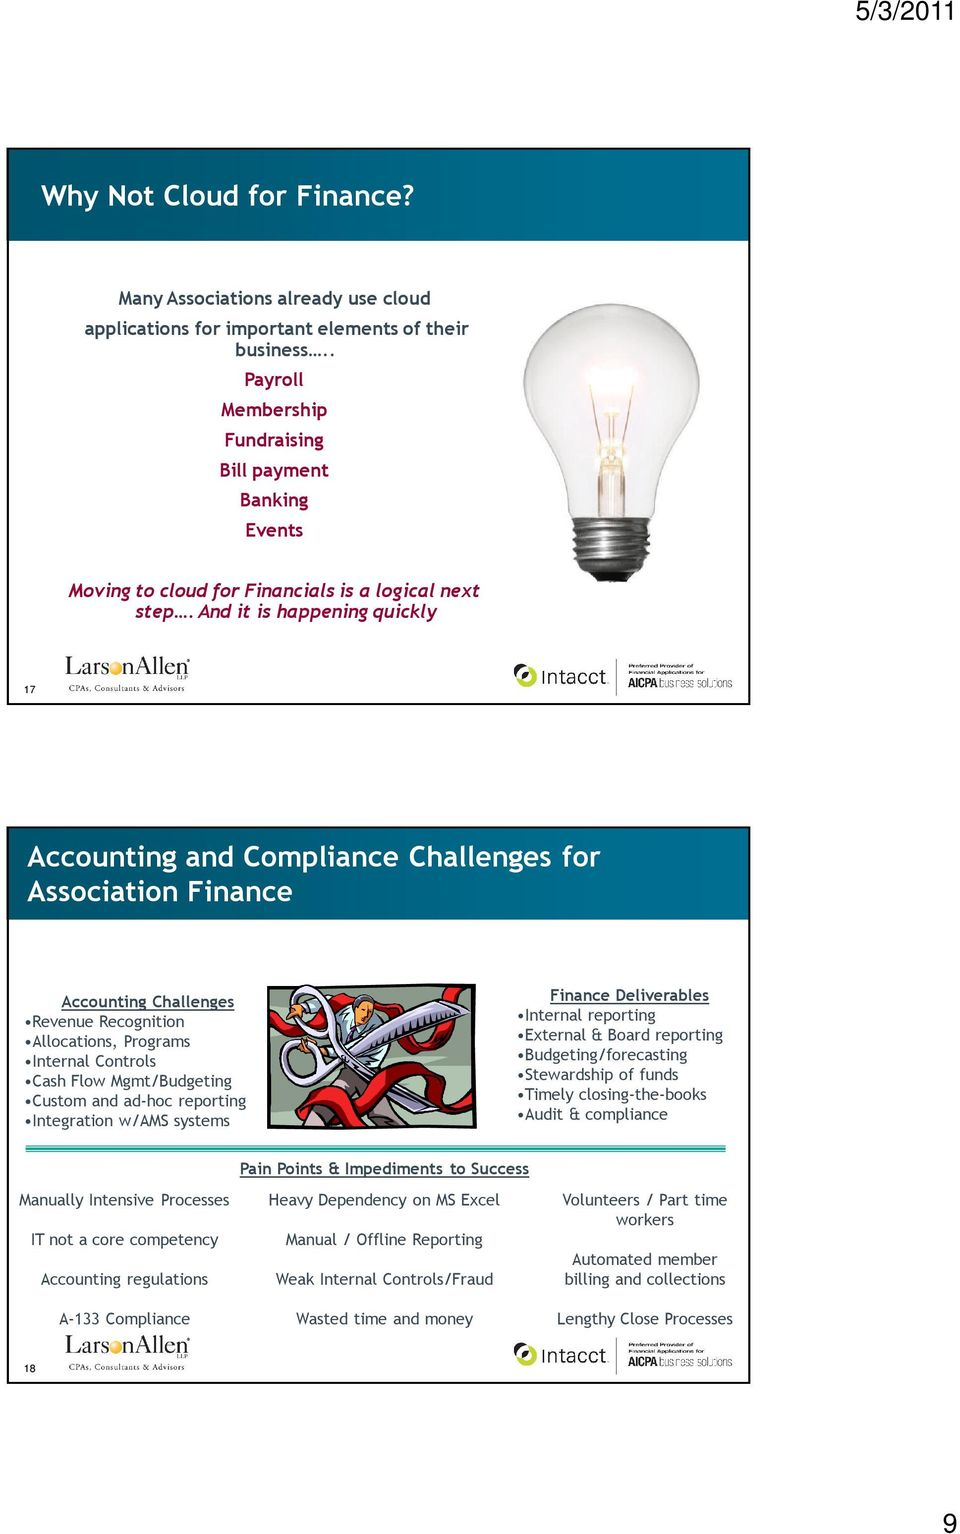 And it is happening quickly 17 Accounting and Compliance Challenges for Association Finance Accounting Challenges Revenue Recognition Allocations, Programs Internal Controls Cash Flow Mgmt/Budgeting